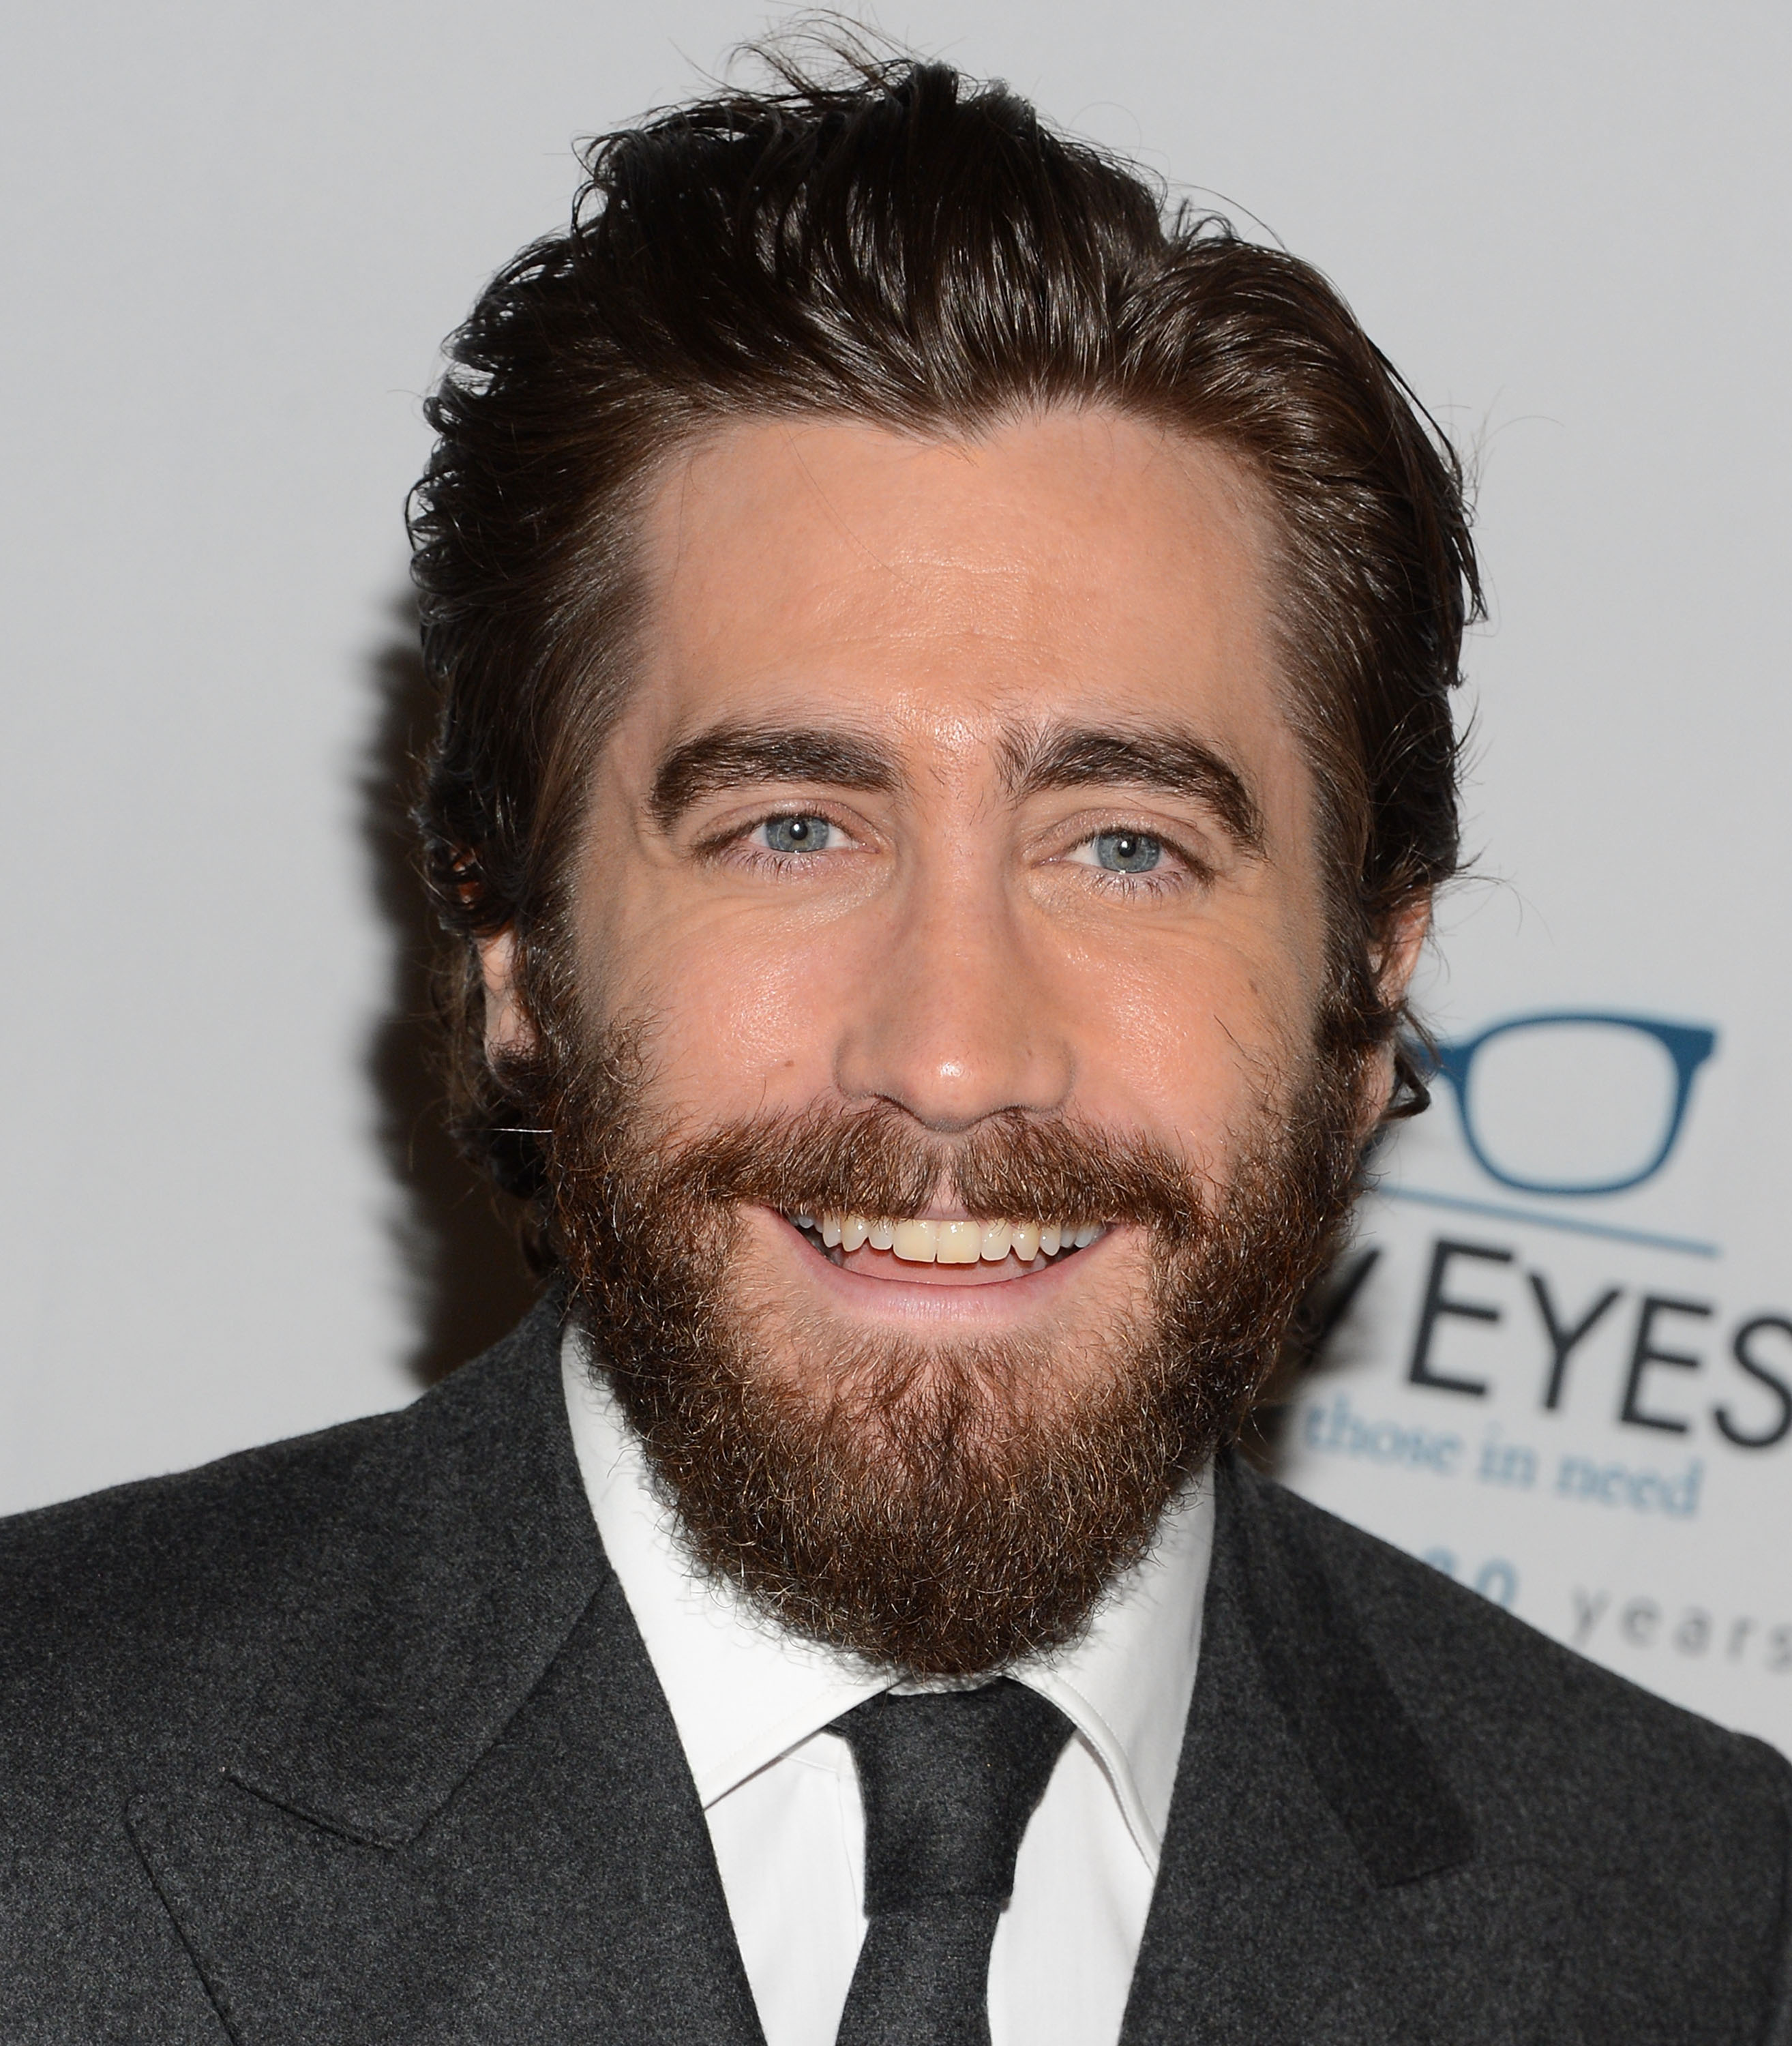 Jake Gyllenhaal flashed a bright smile for photographers.